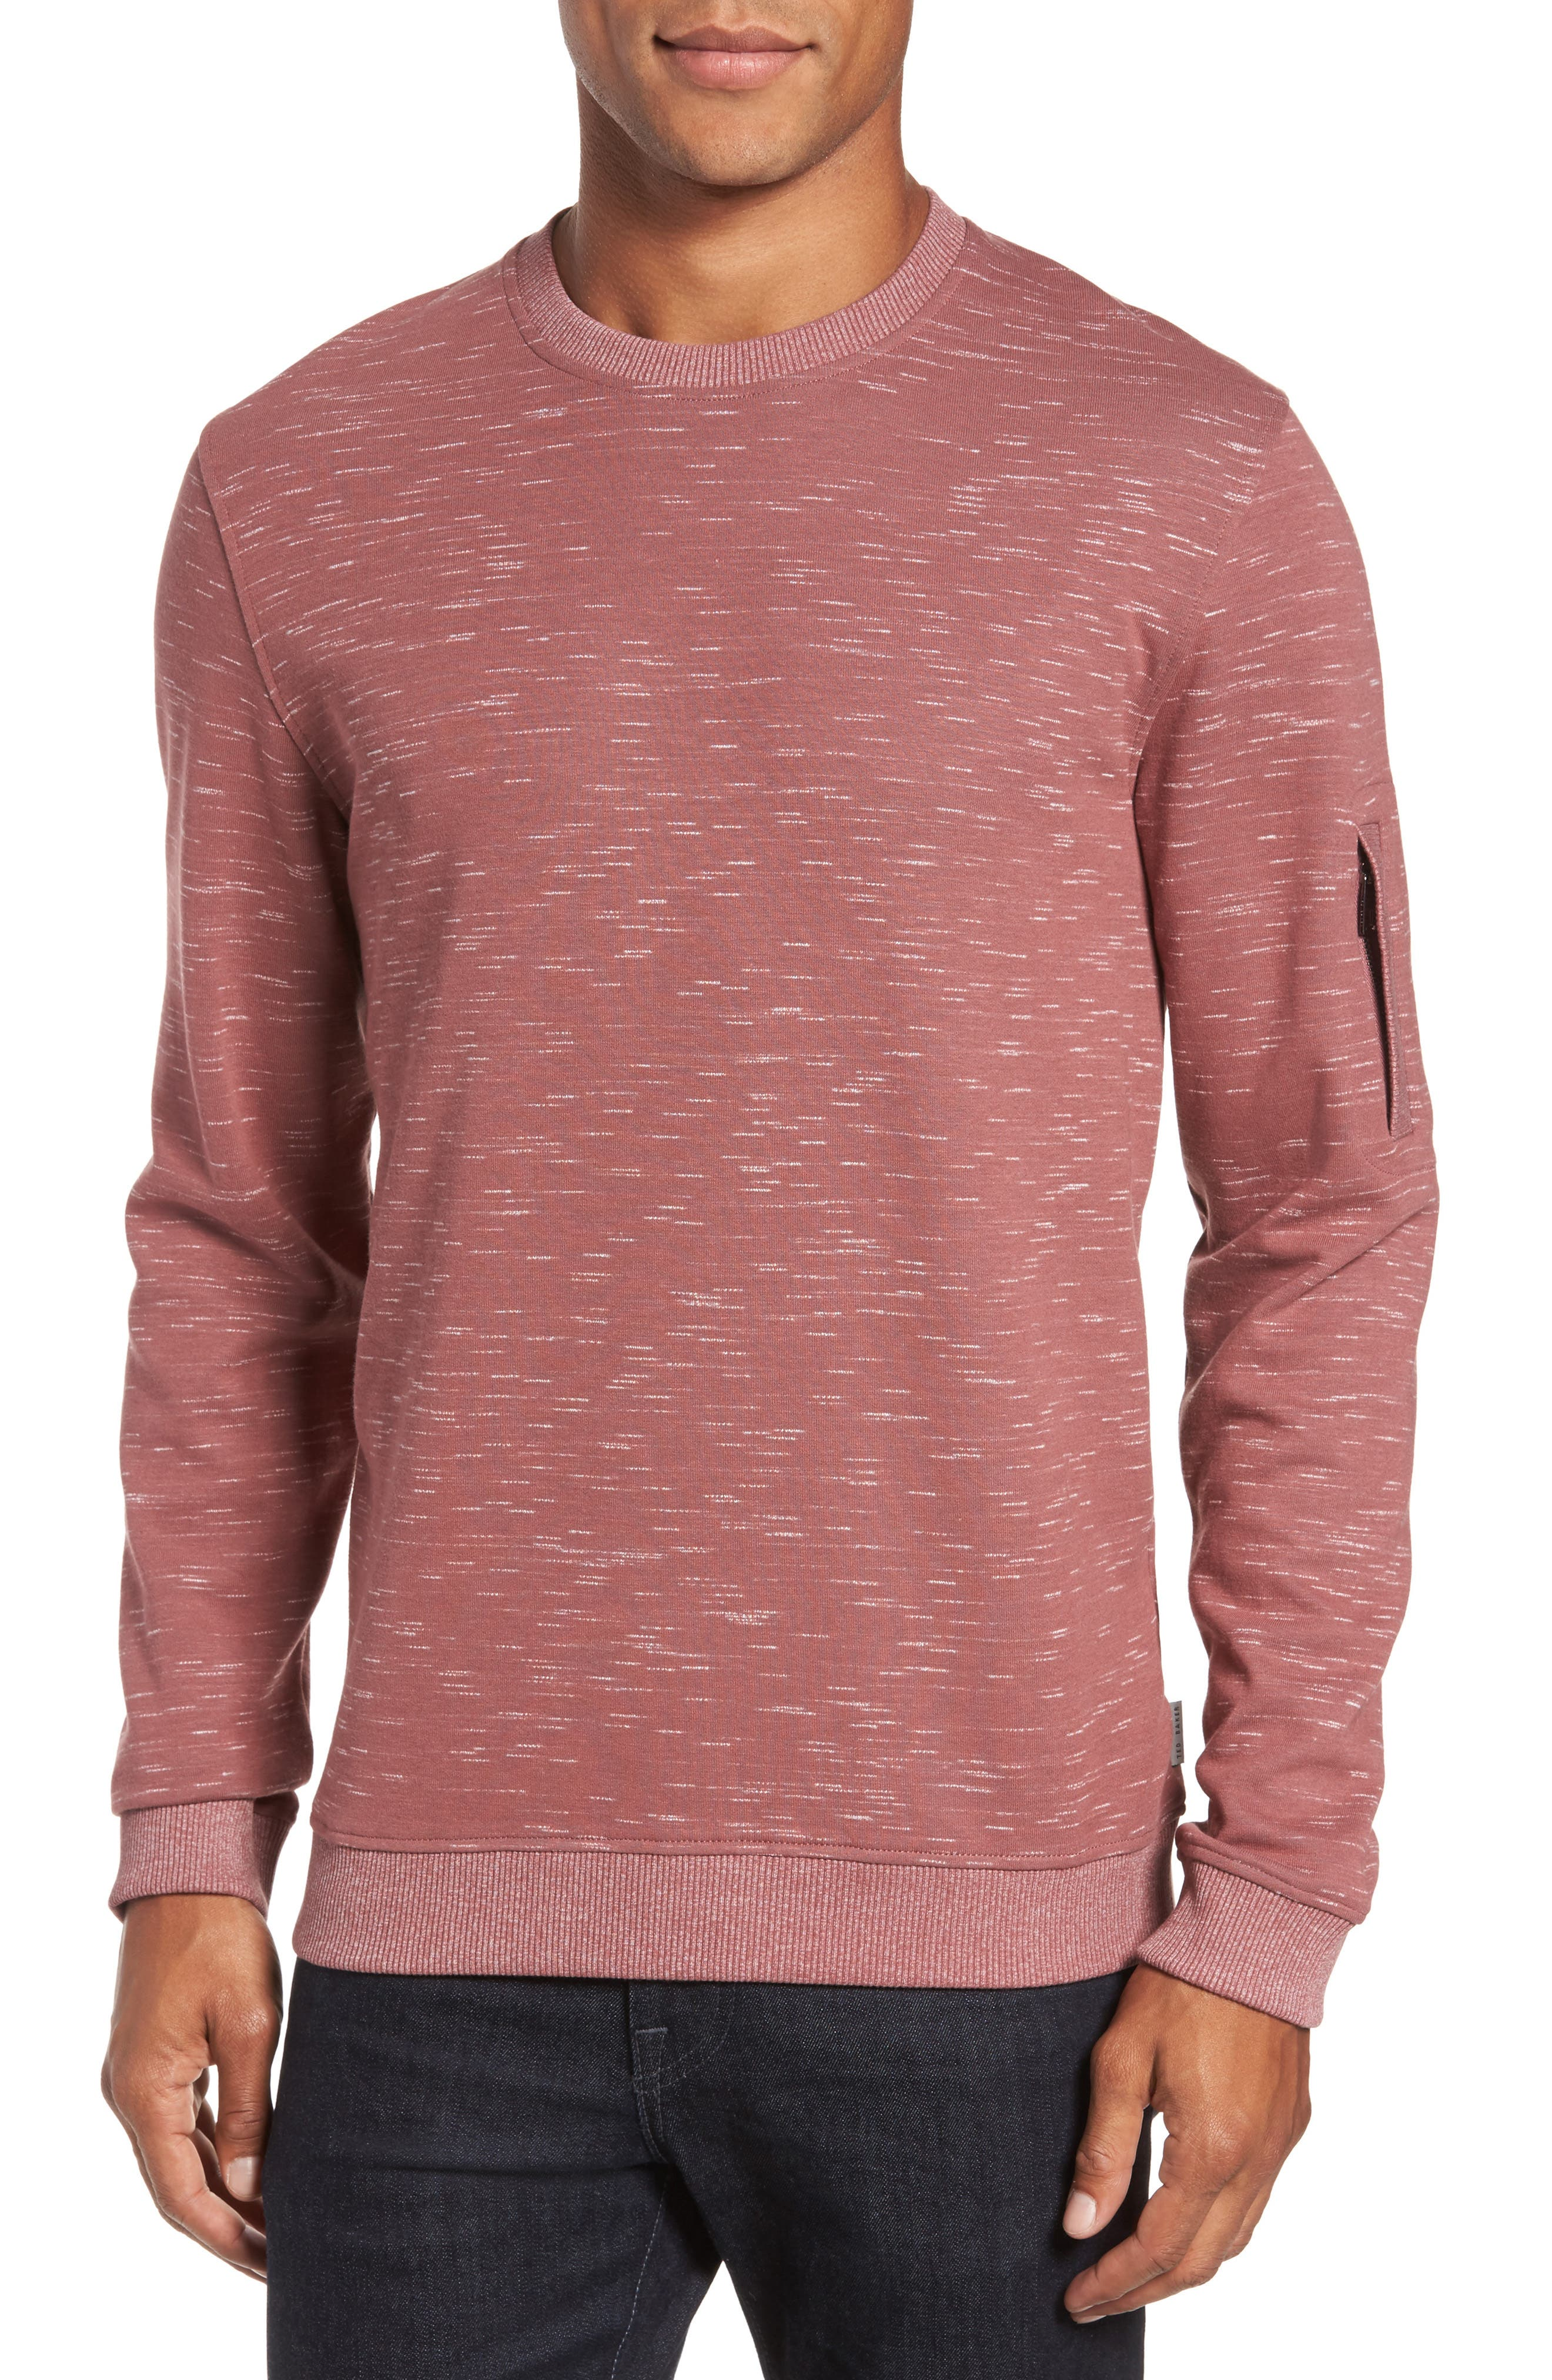 Bepay Jersey Sweatshirt,                         Main,                         color, Dusky Pink